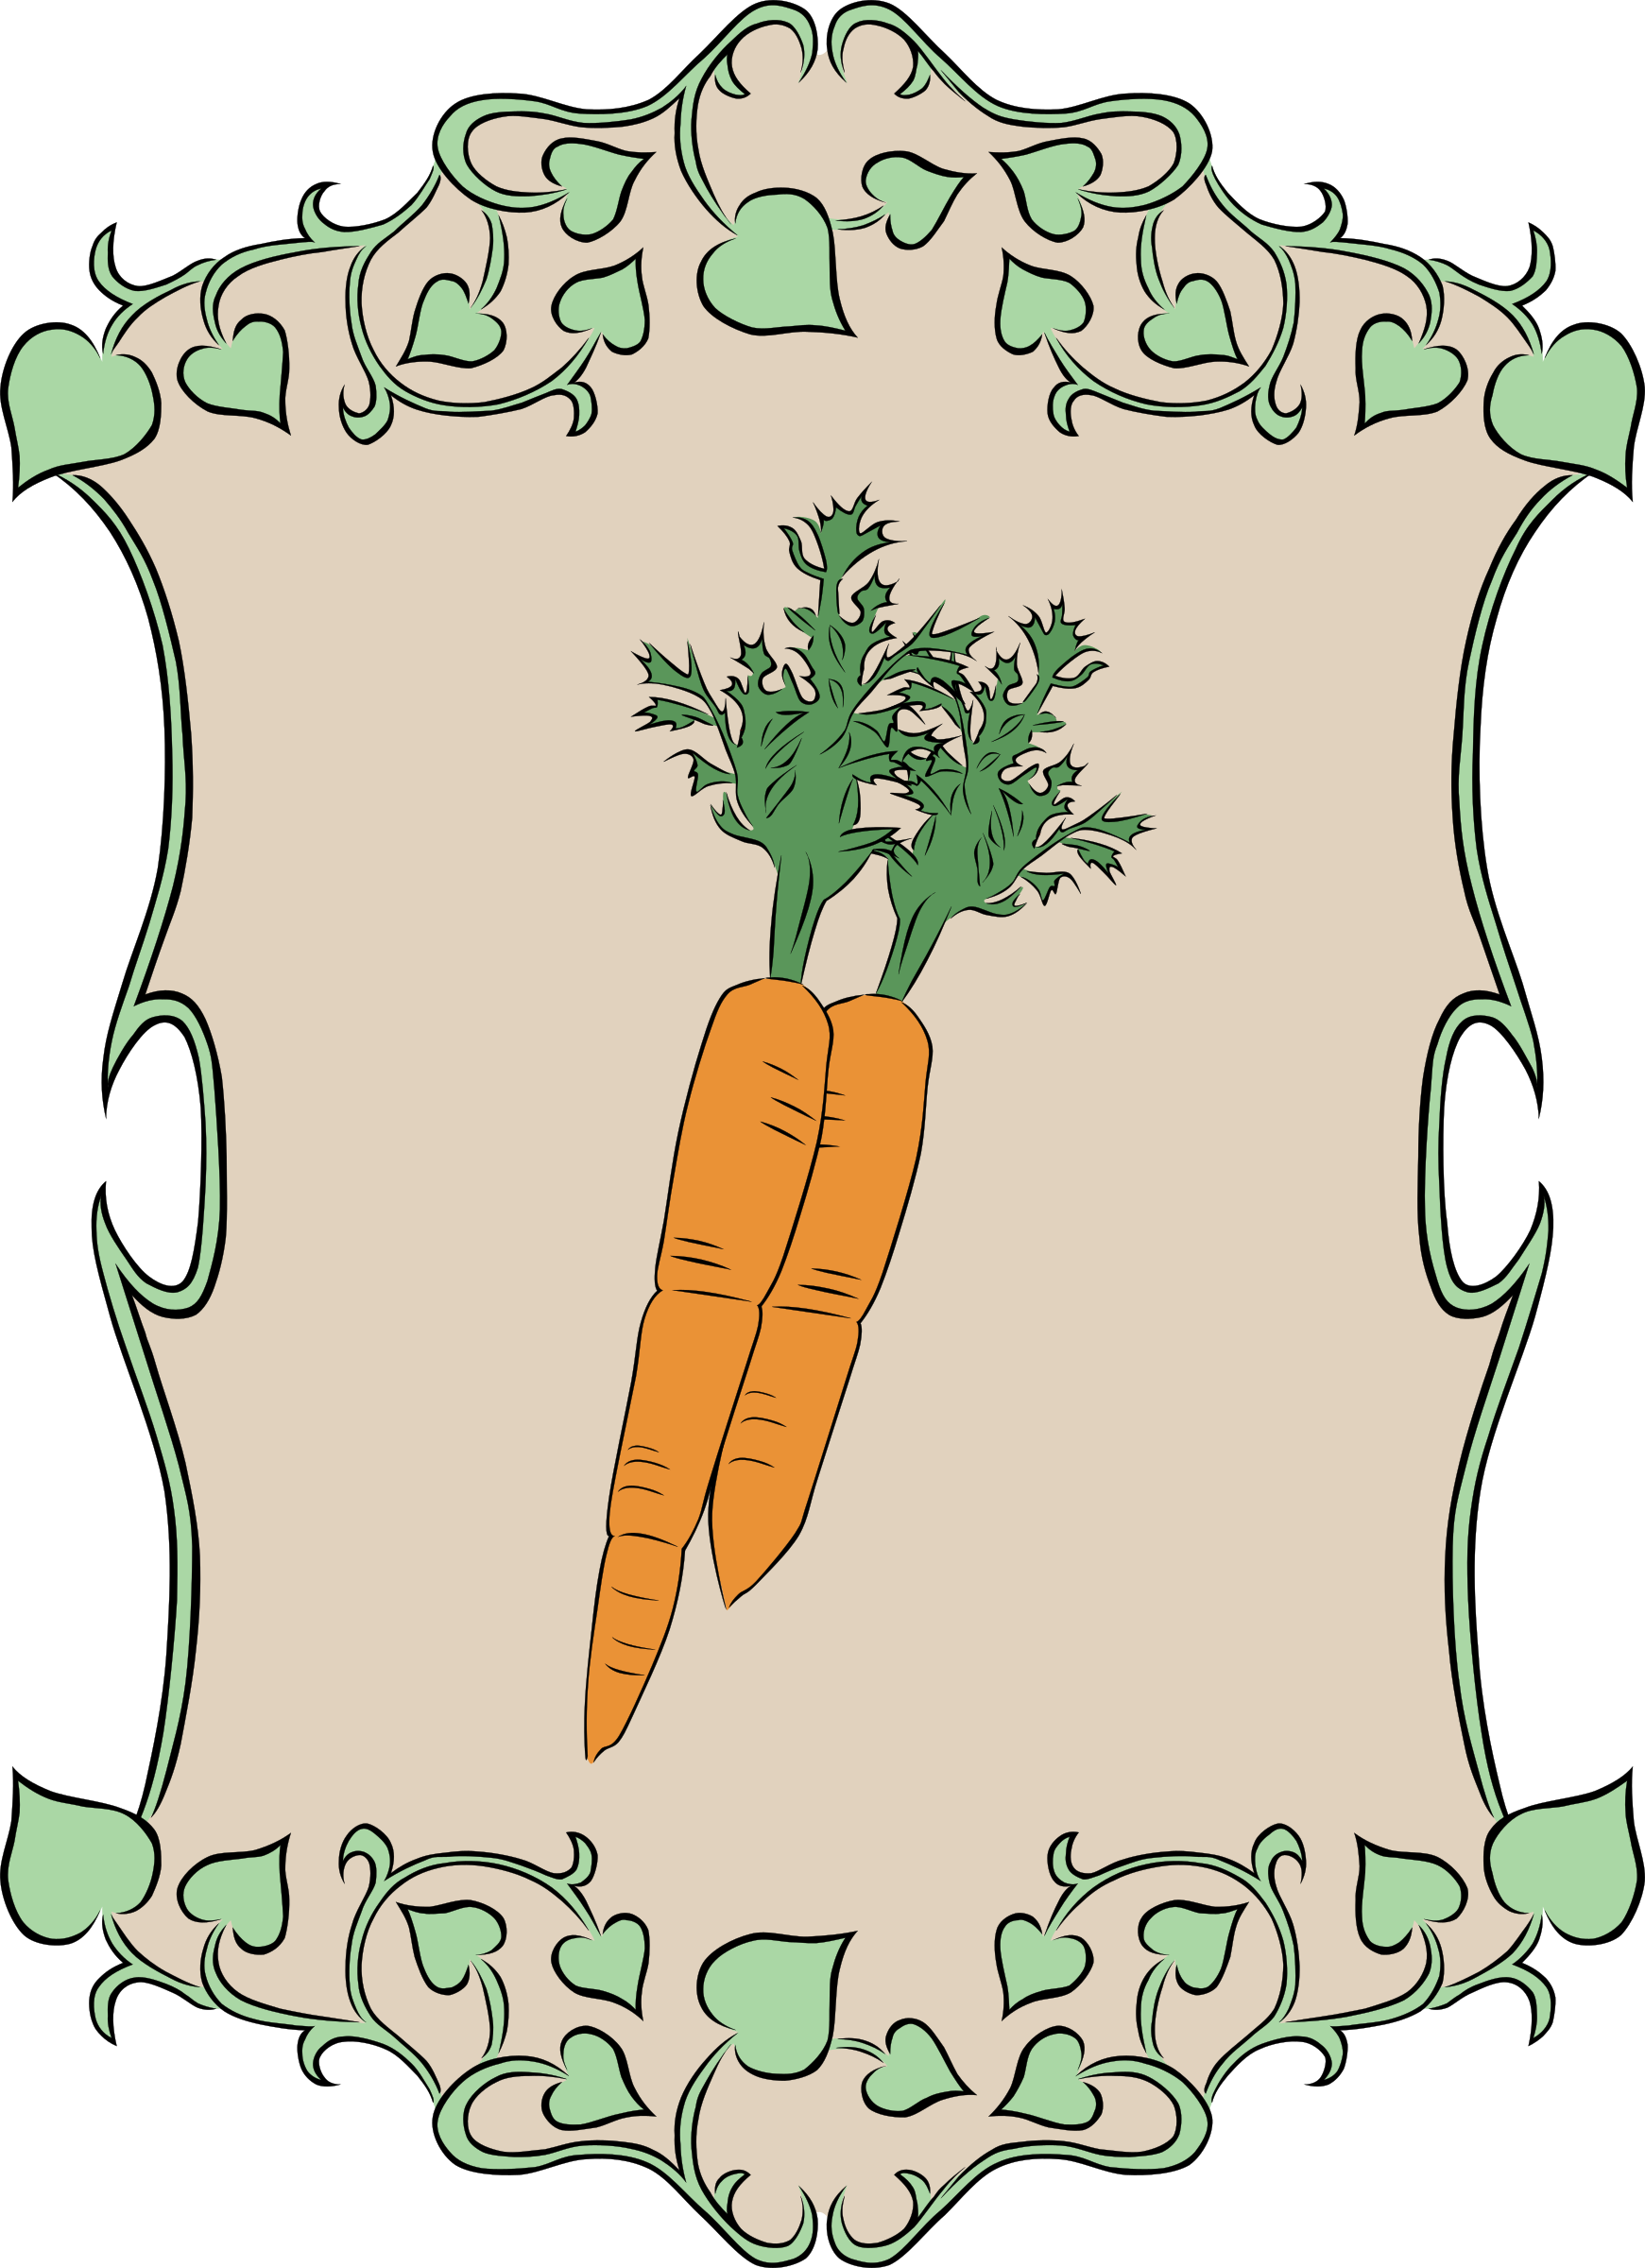 Garden Sign Carrots by Gerald_G